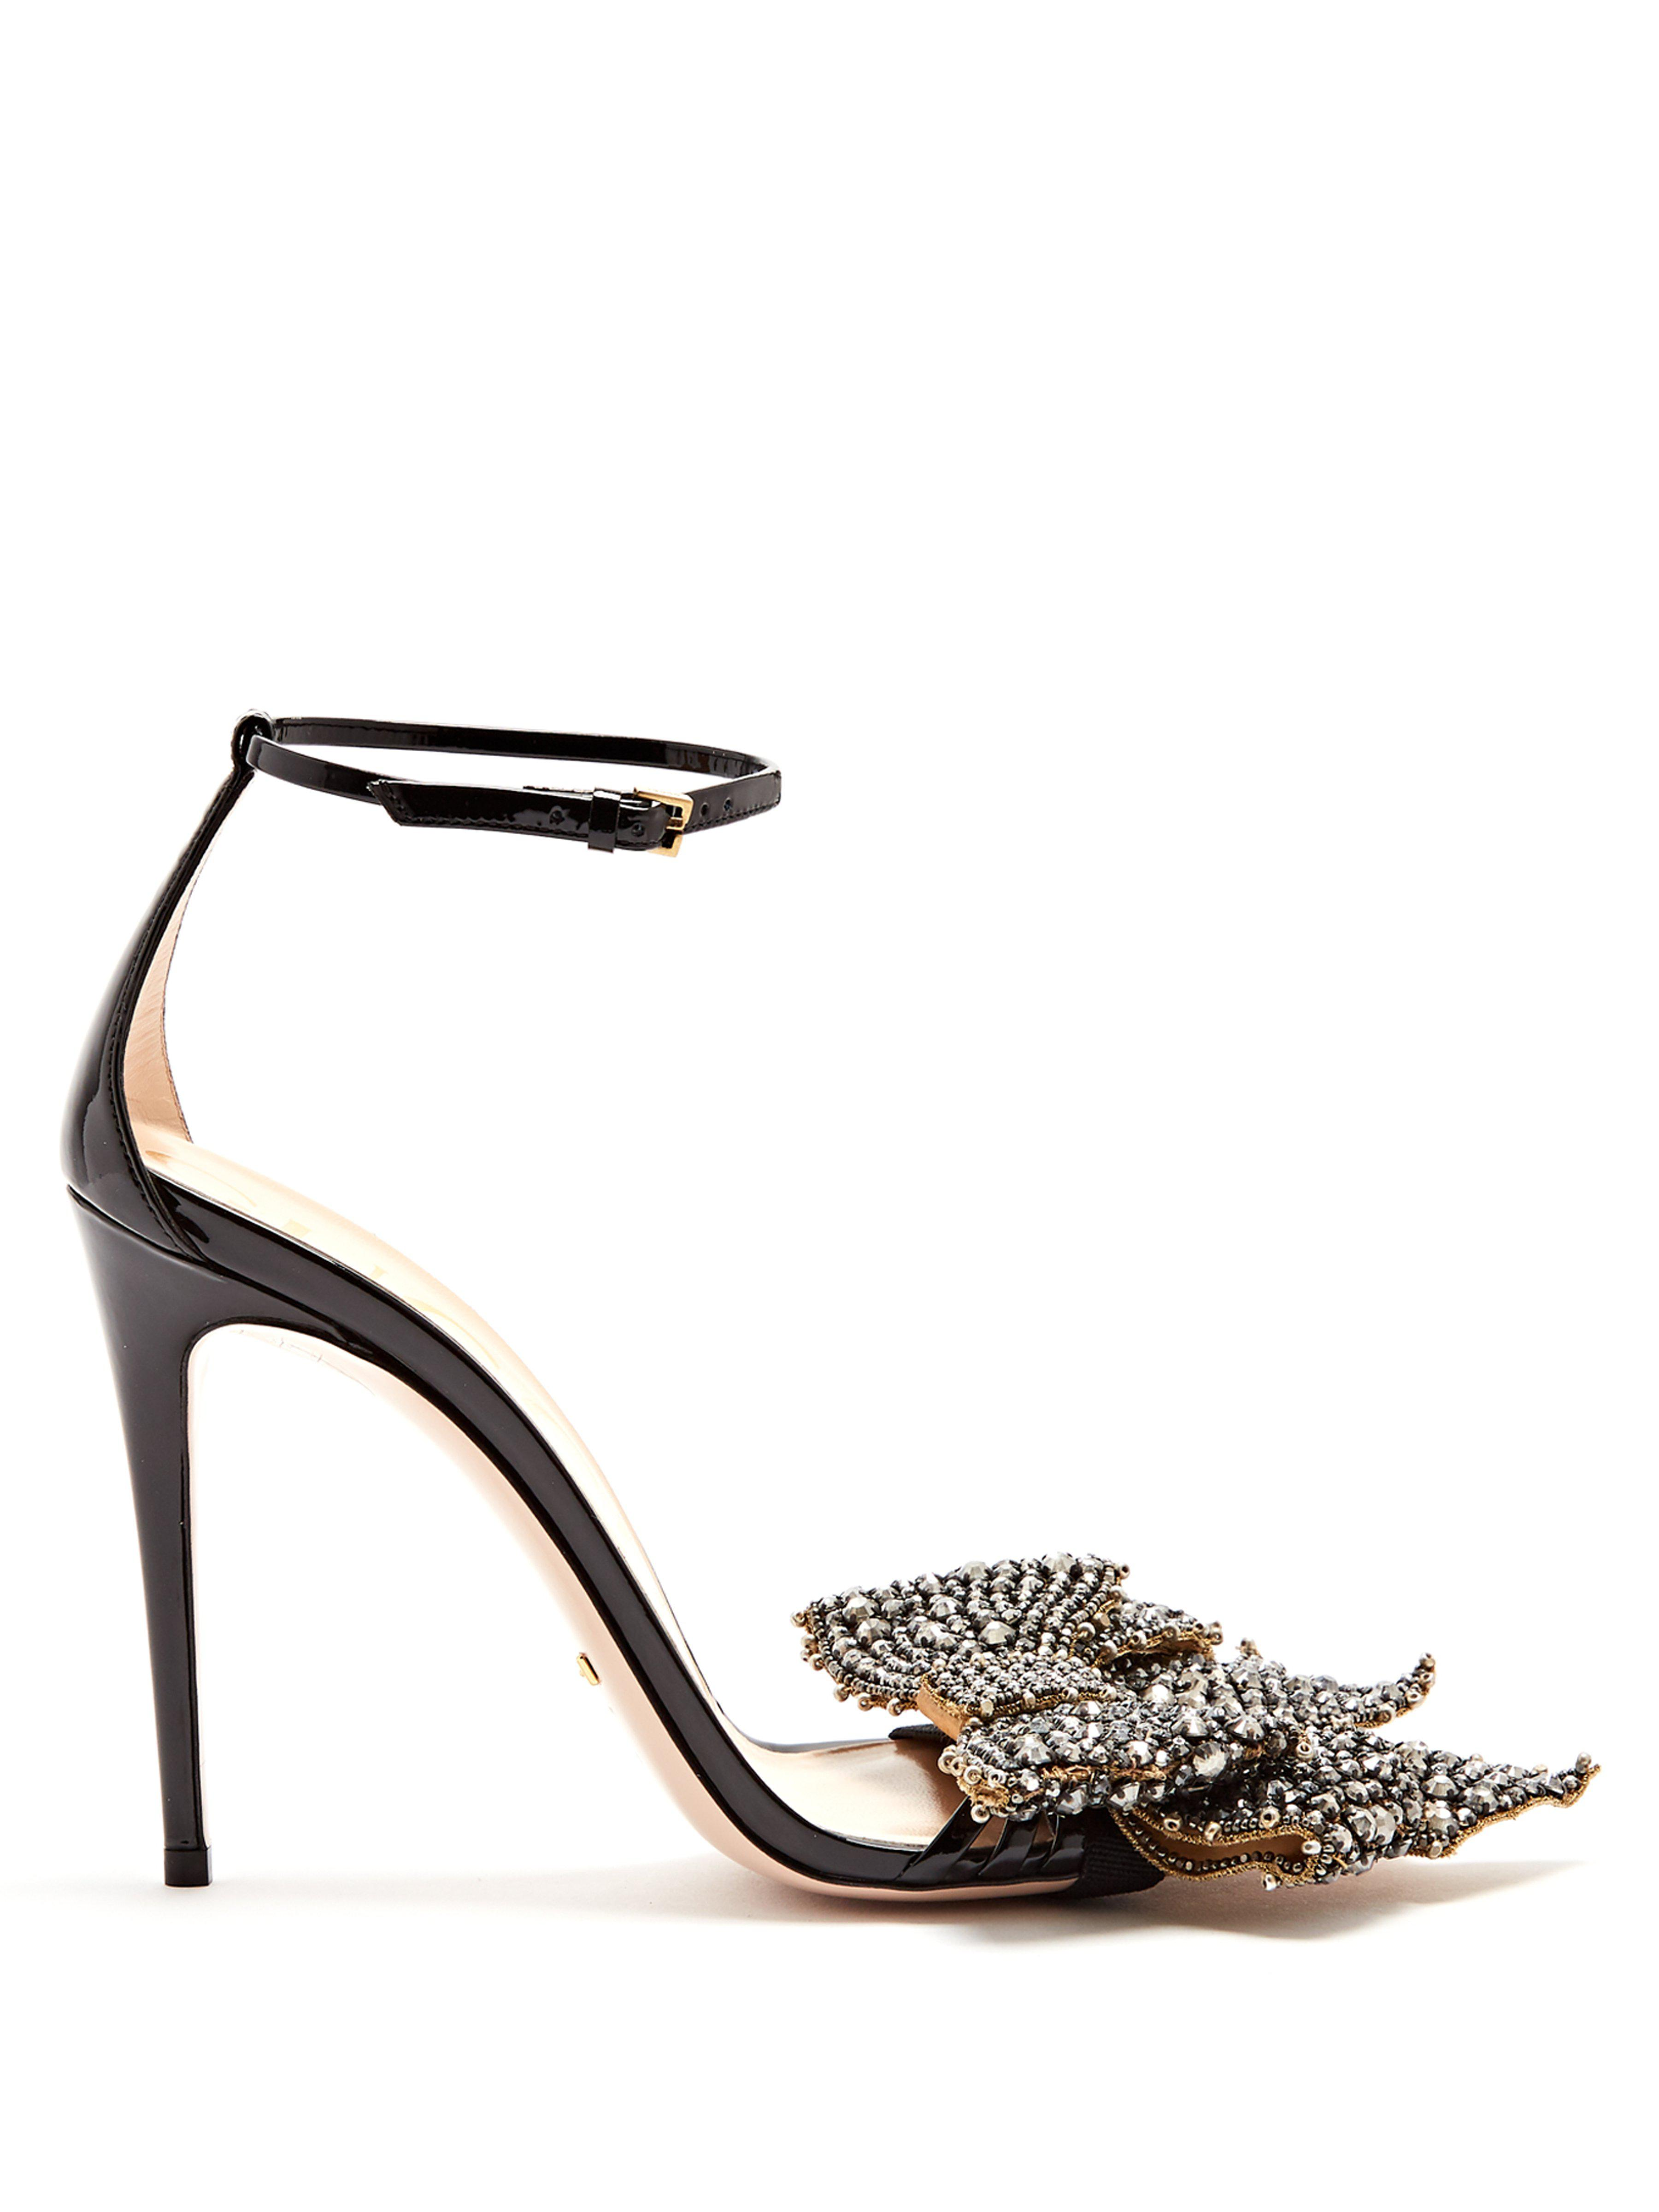 6aed67ffa942 Gucci Crystal-embellished Detachable-bow Leather Sandals in Black - Lyst